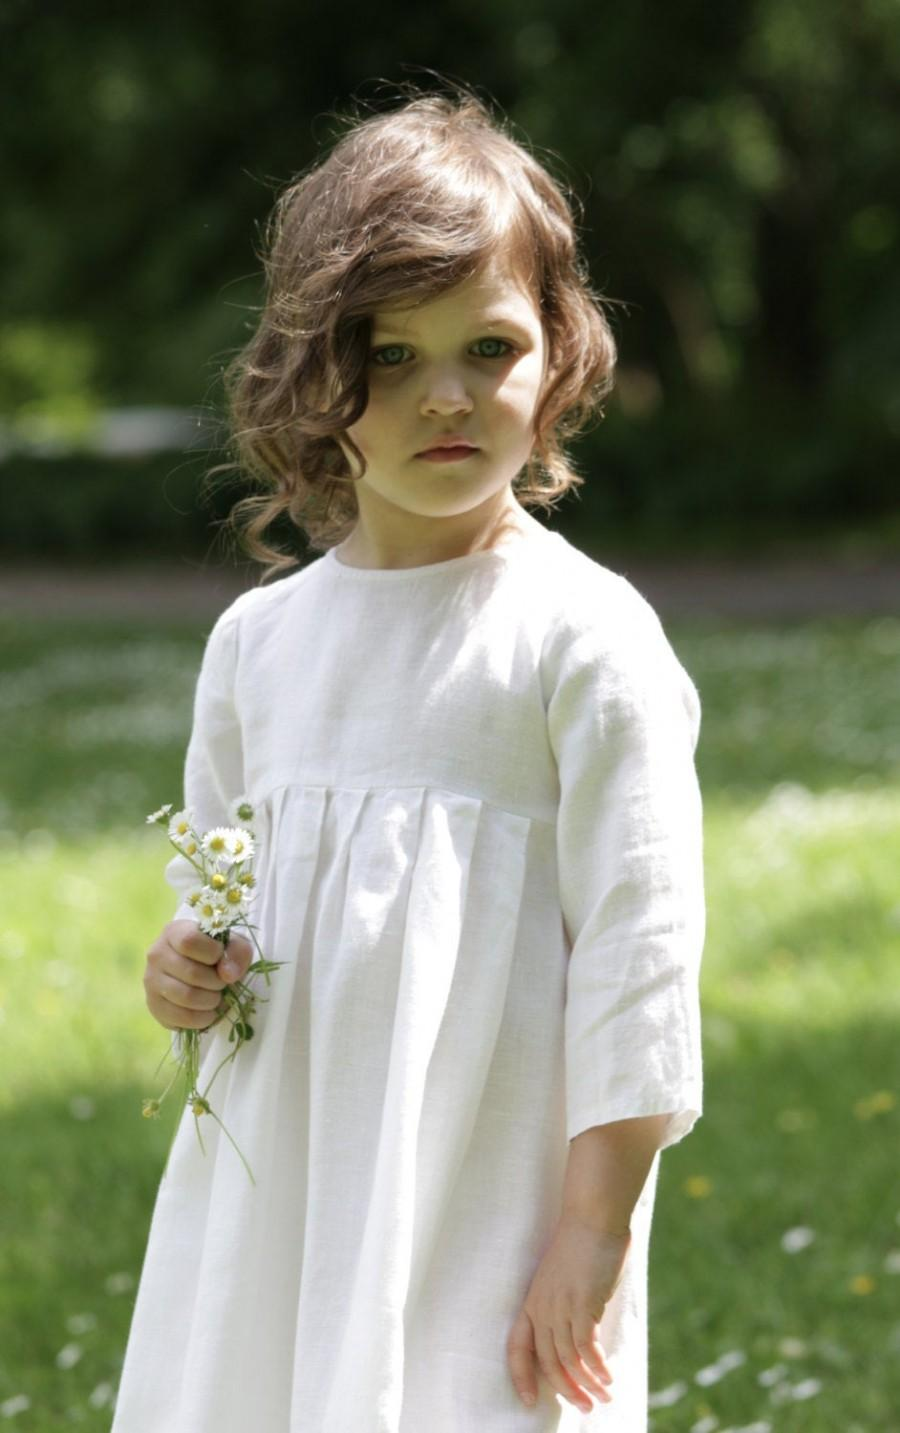 Wedding - LINEN GIRLS' DRESS Flower Girl Dresses  Baby Girls' Clothing Weddings Dresses.   100% natural linen fabric rustic girl's dress